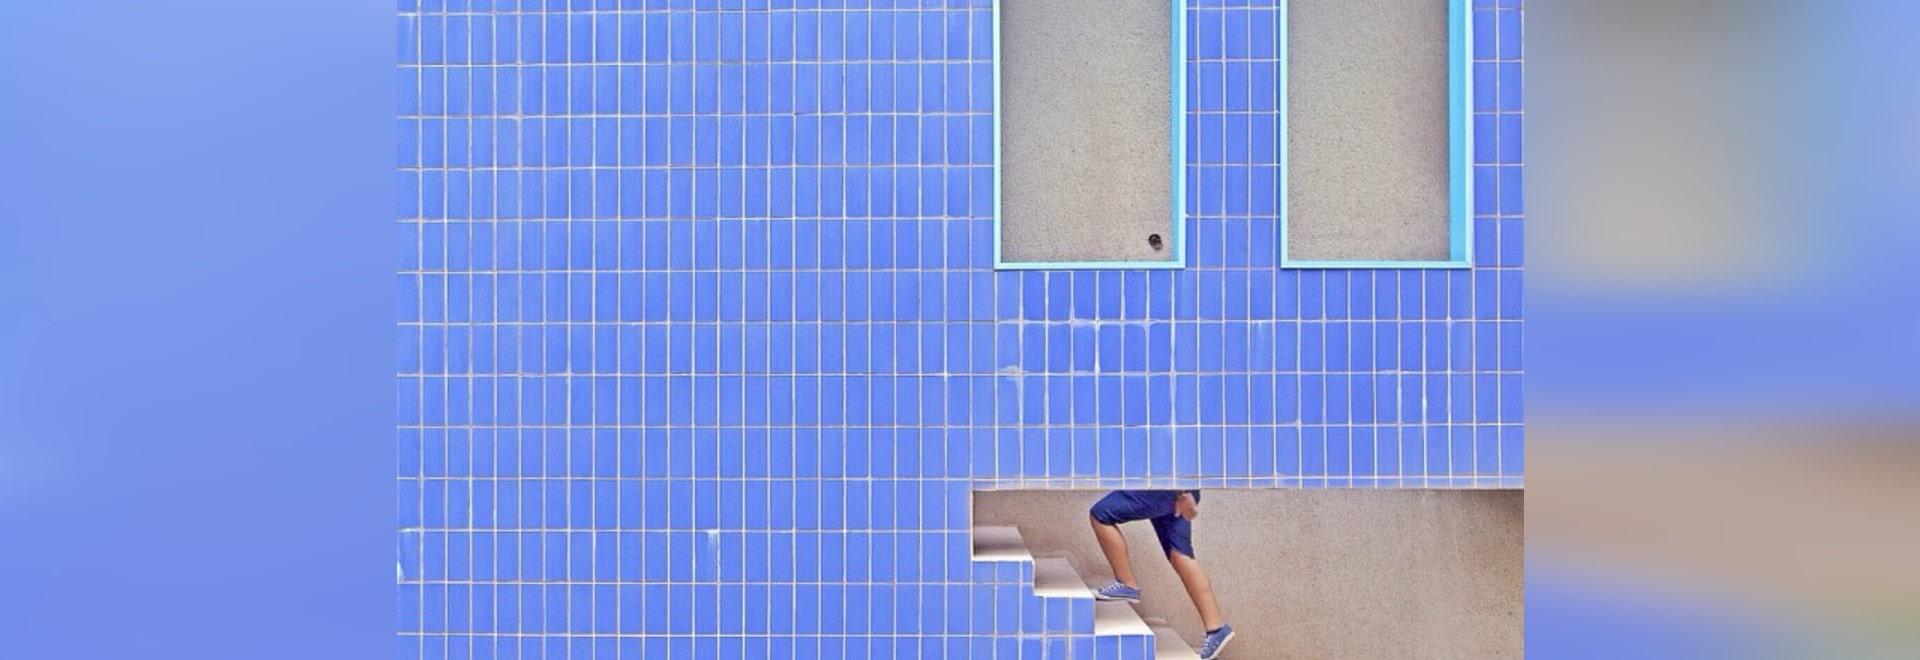 SERGE NAJJAR CAPTURES PATTERNS AND MOVEMENT AMID URBAN CONCRETE